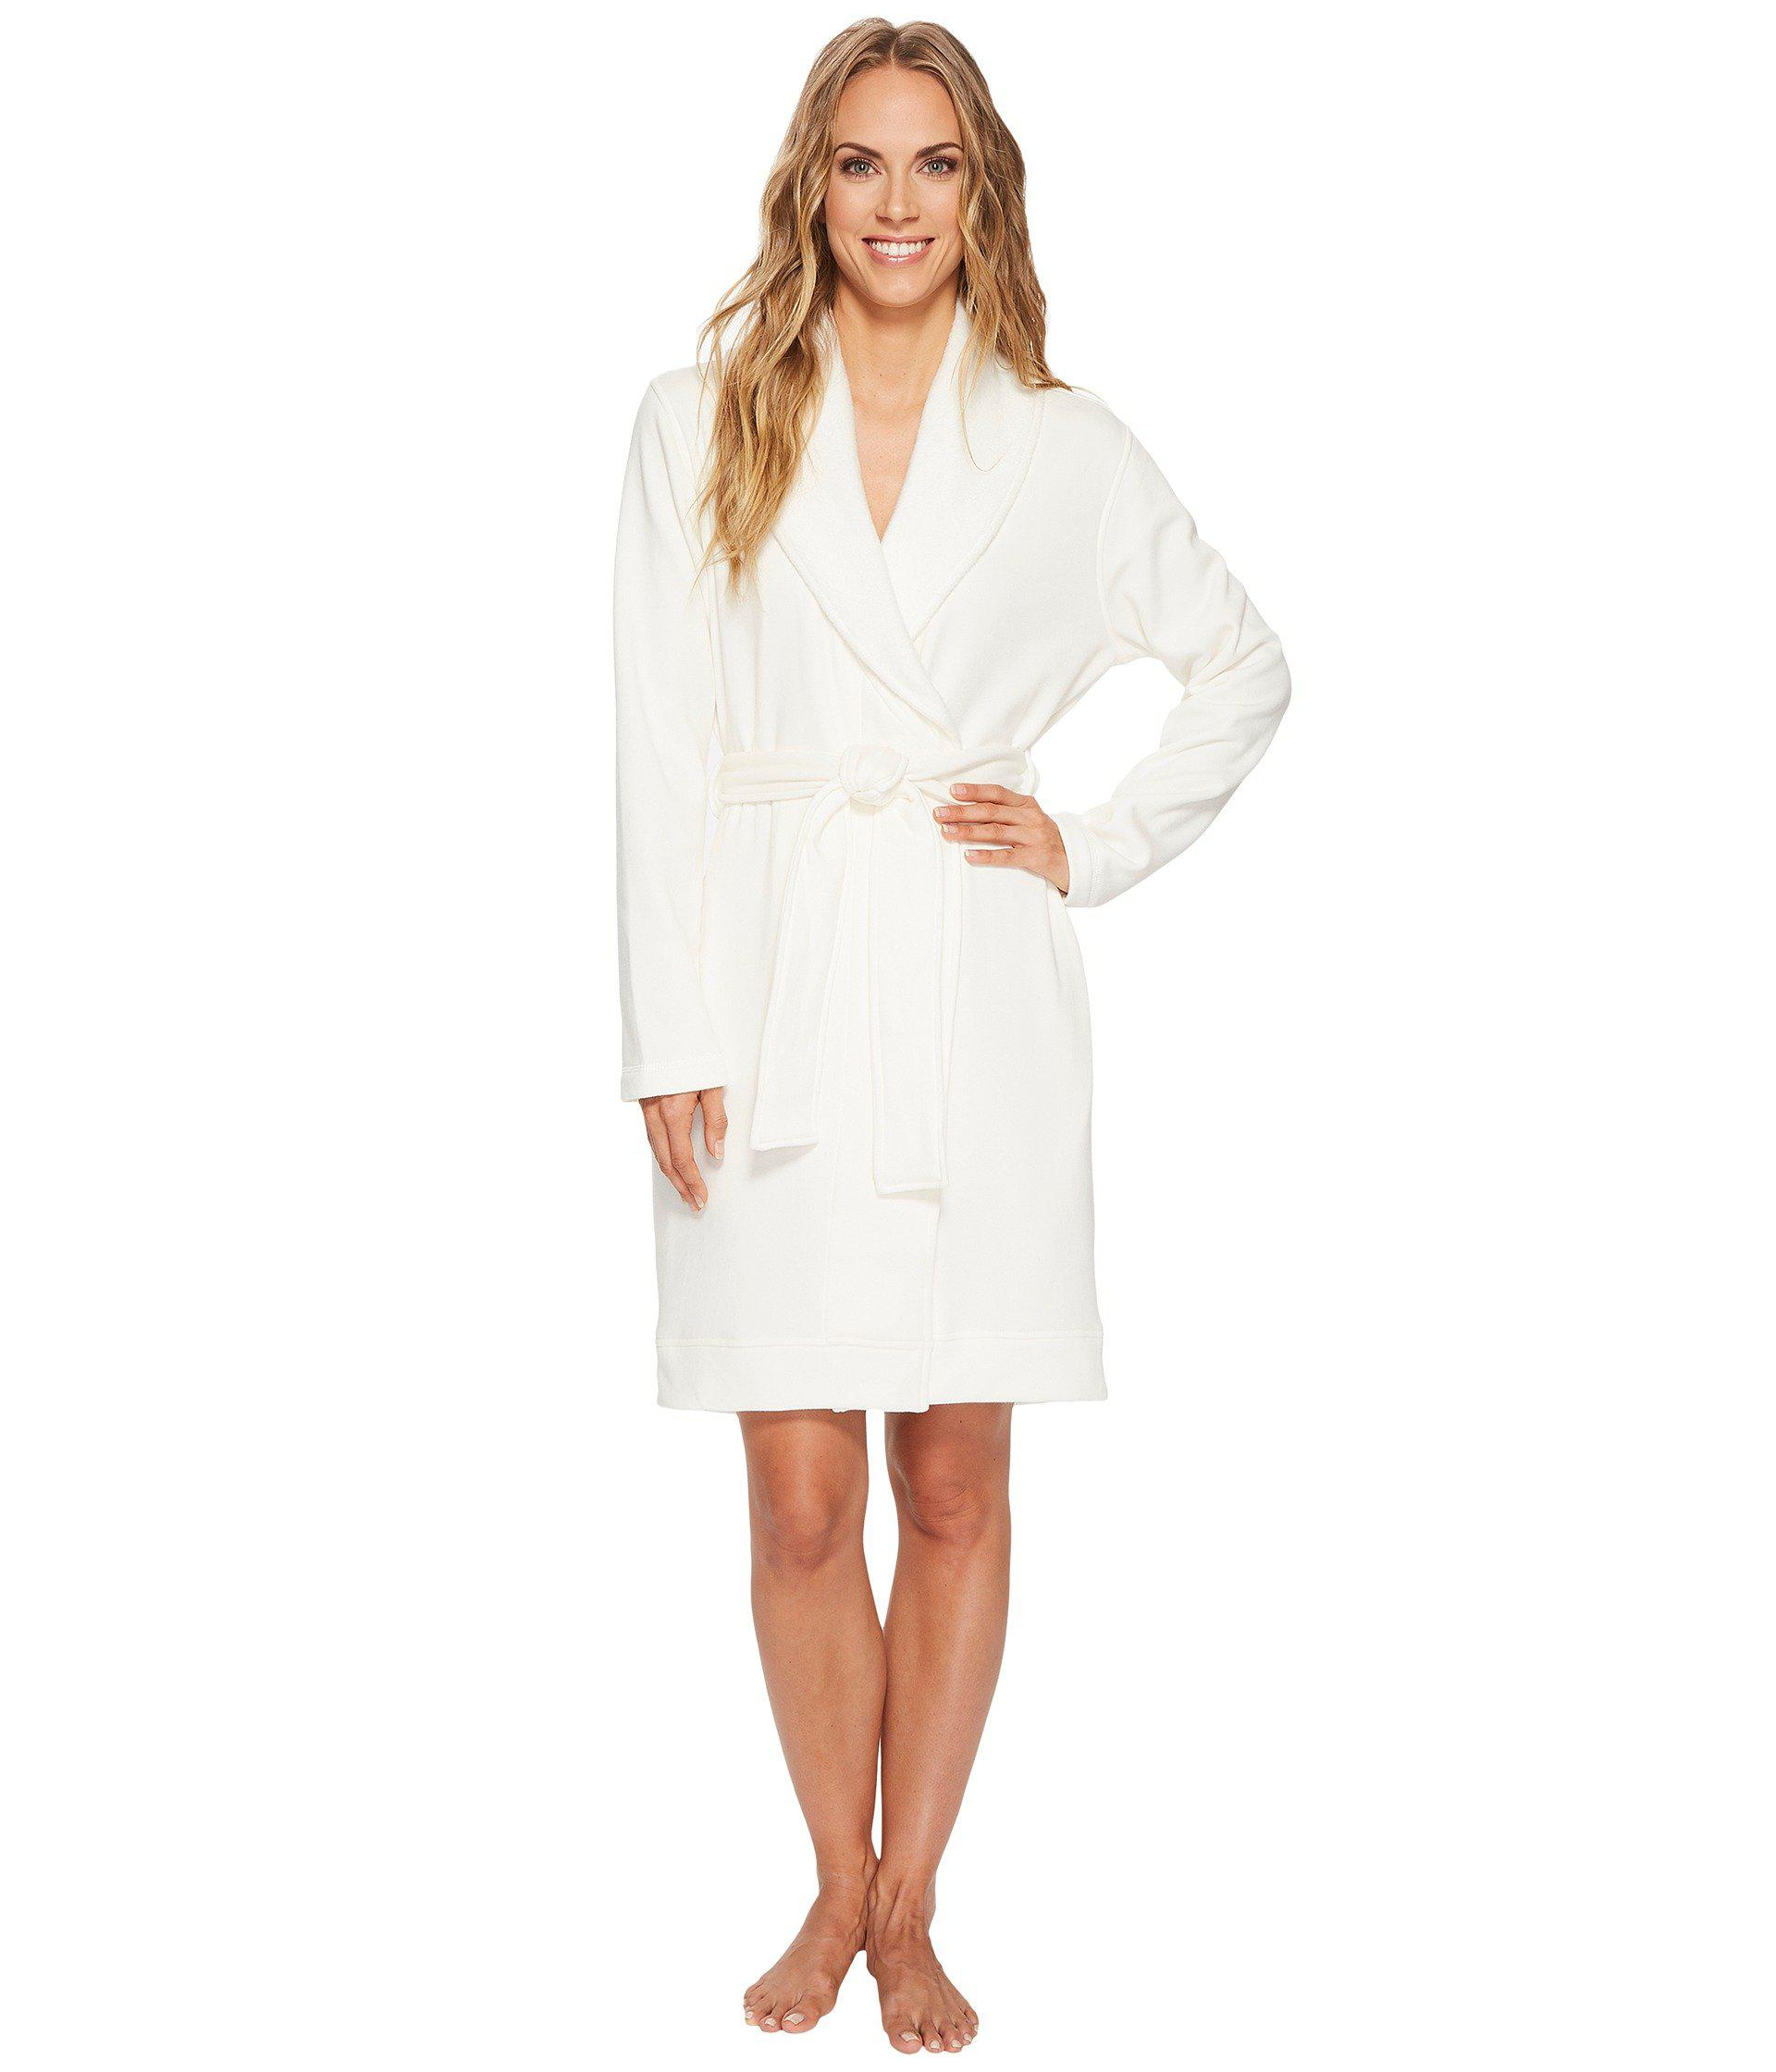 f25ae263a8 Lyst - Ugg Blanche Robe (oatmeal Heather) Women s Robe in Natural